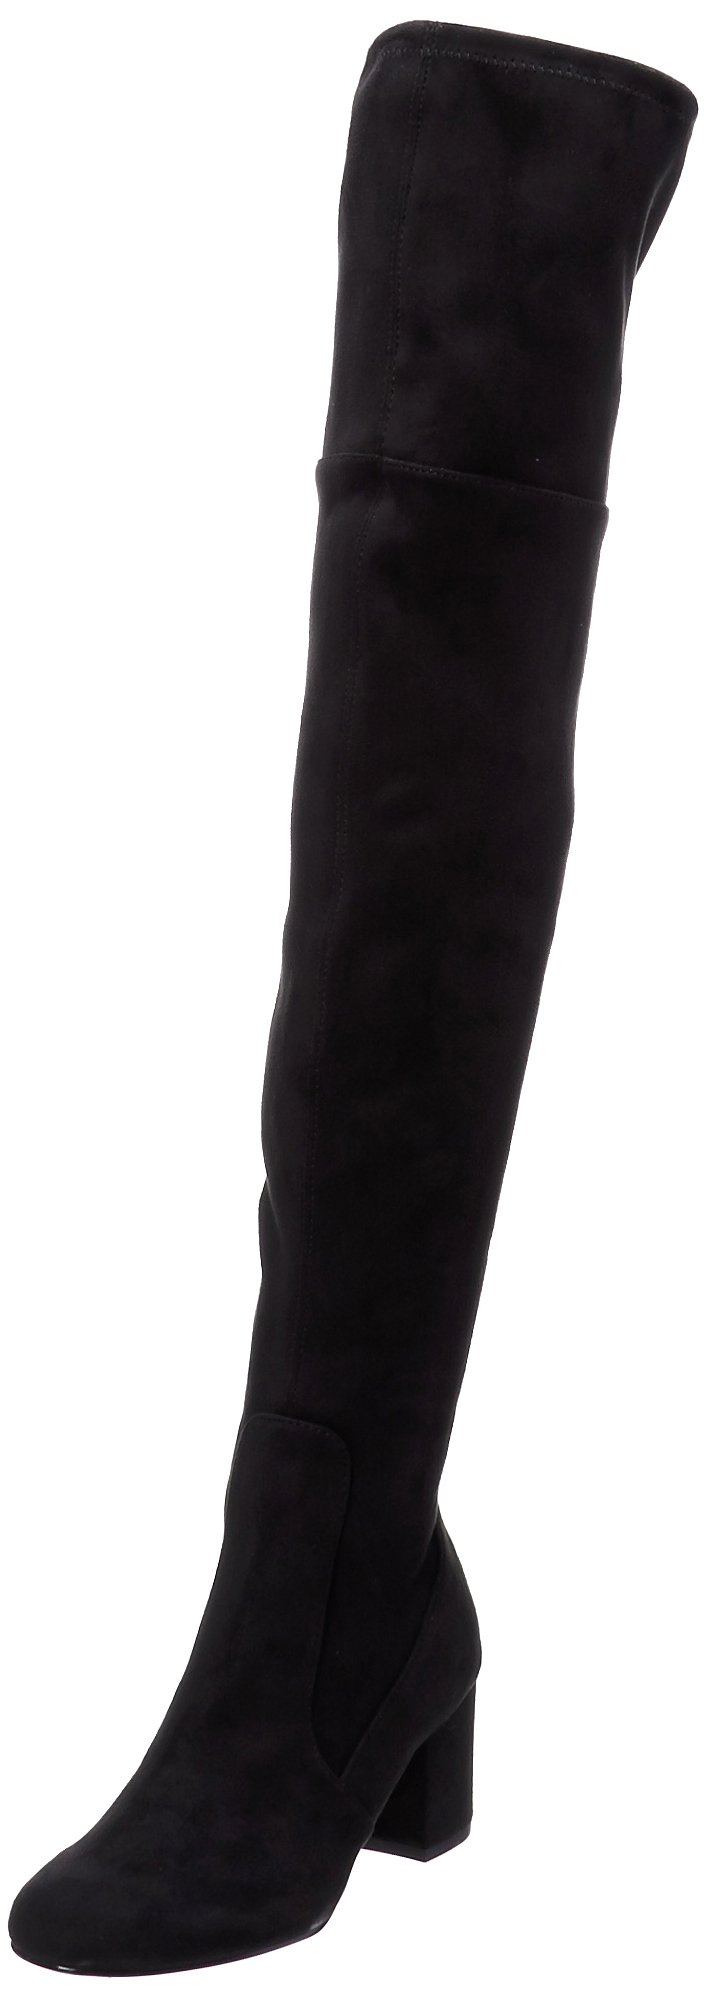 Sam Edelman Women's Varona Over The Knee Boot, Black, 6.5 Medium US